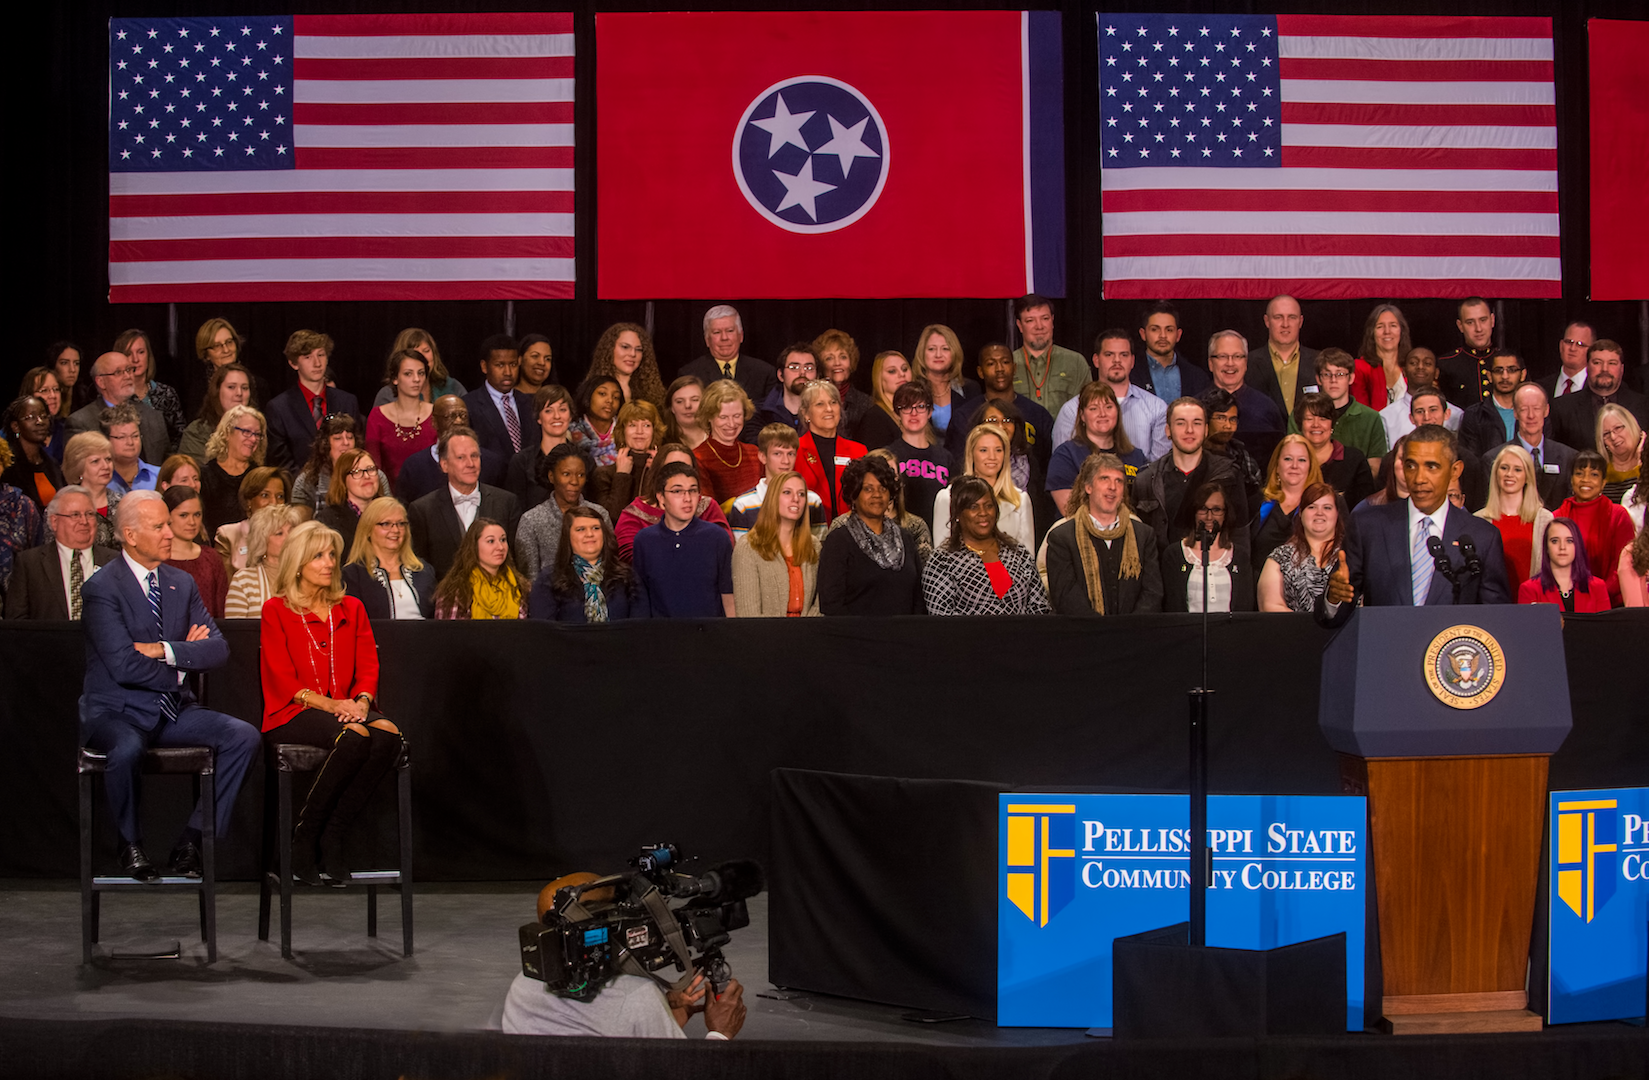 President Obama at the PSTCC campus in Knoxville, TN, photograph by Bill Foster